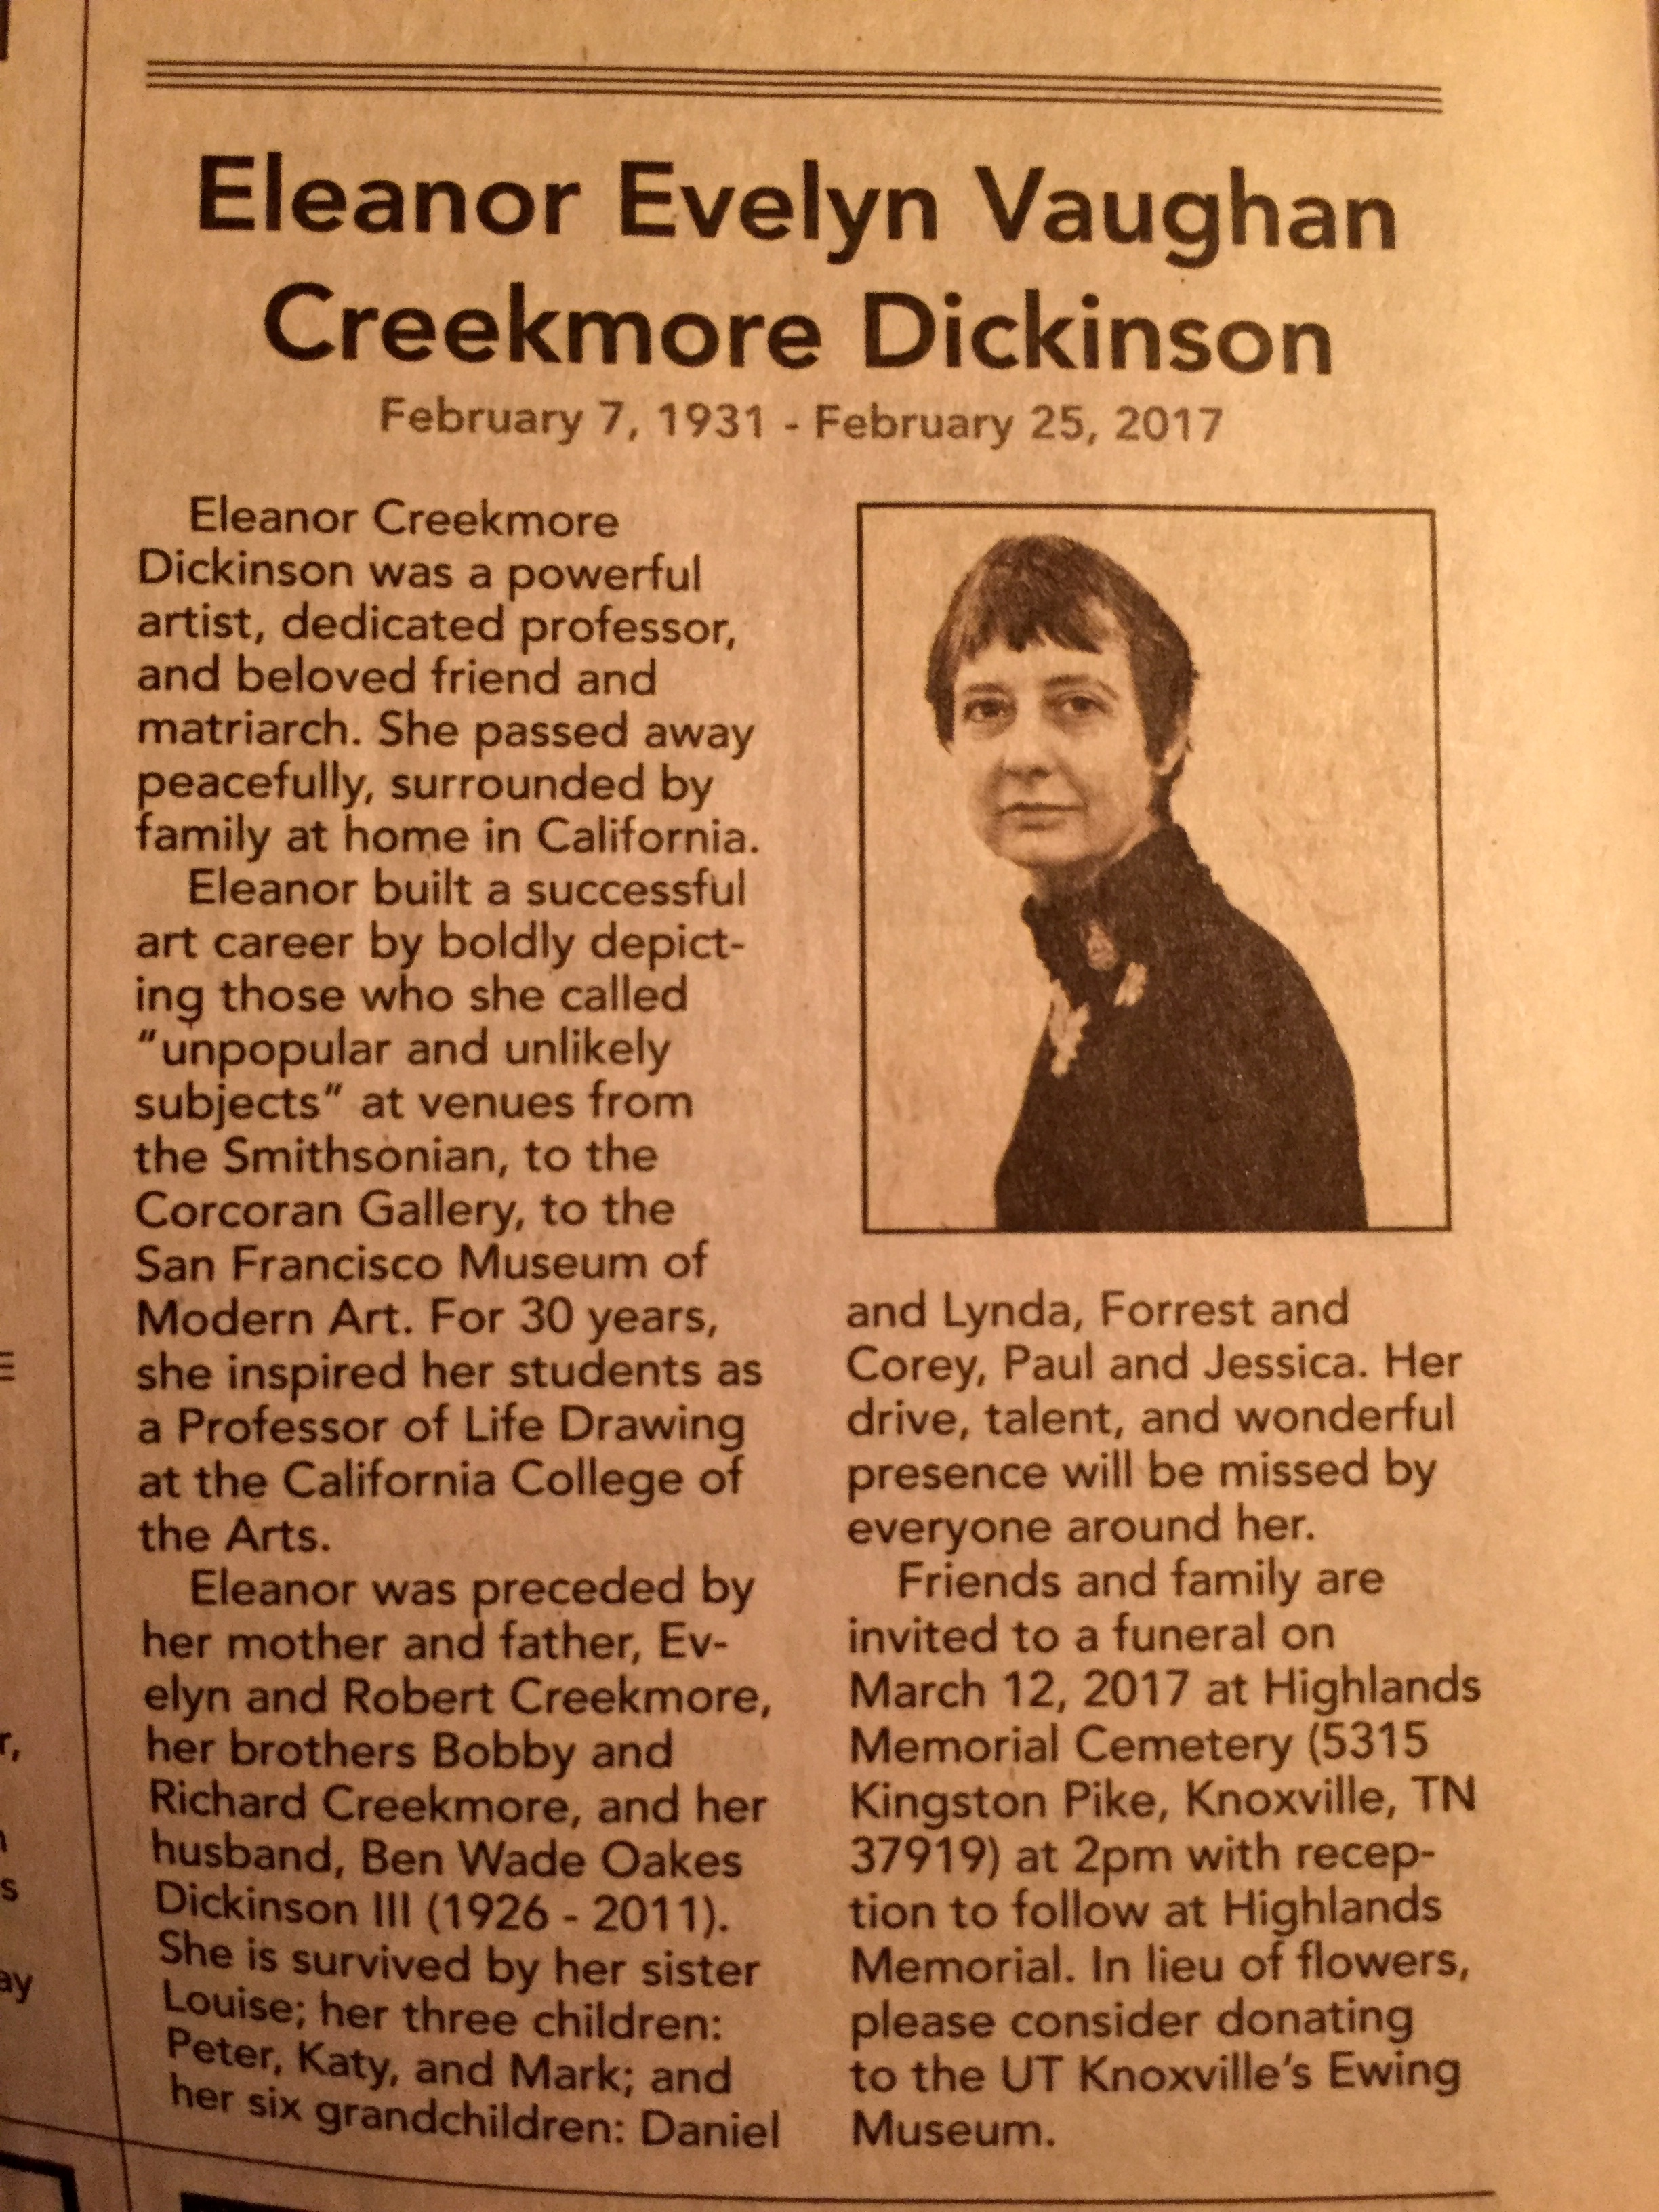 Eleanor Creekmore Dickinson Obituary March 2017